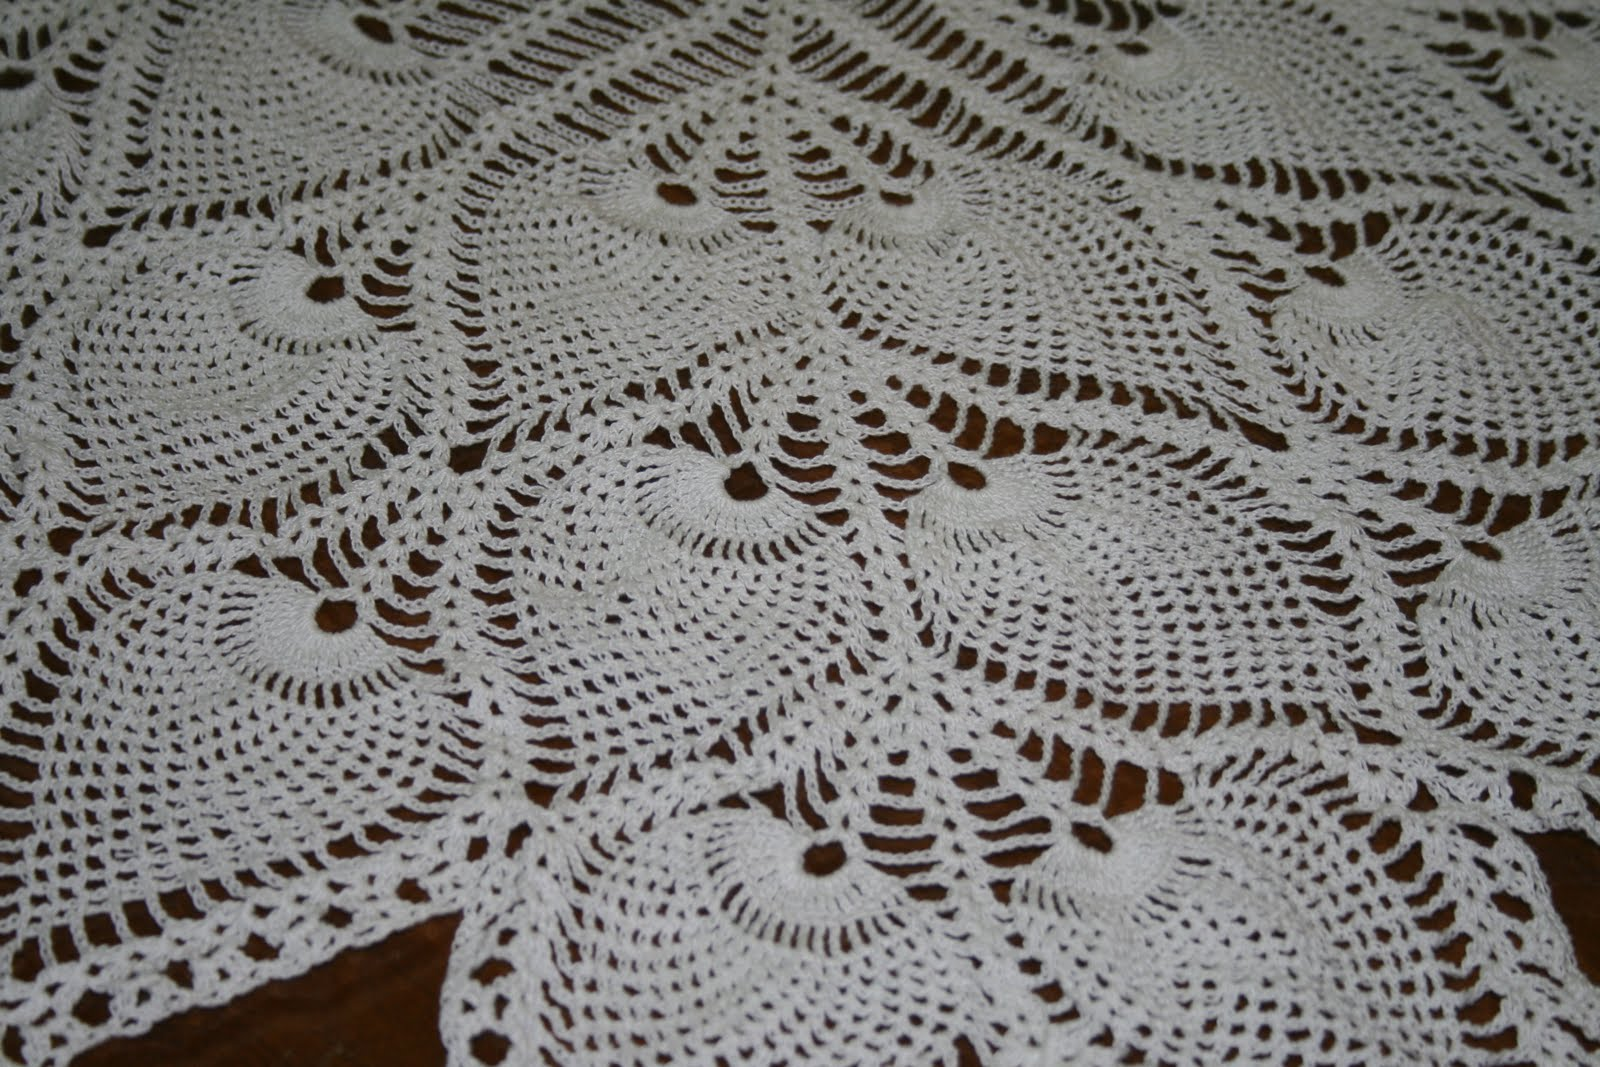 Crochet Patterns Table Runner : Spider Web Crochet Table Runner Pattern Patterns JoBSPapa